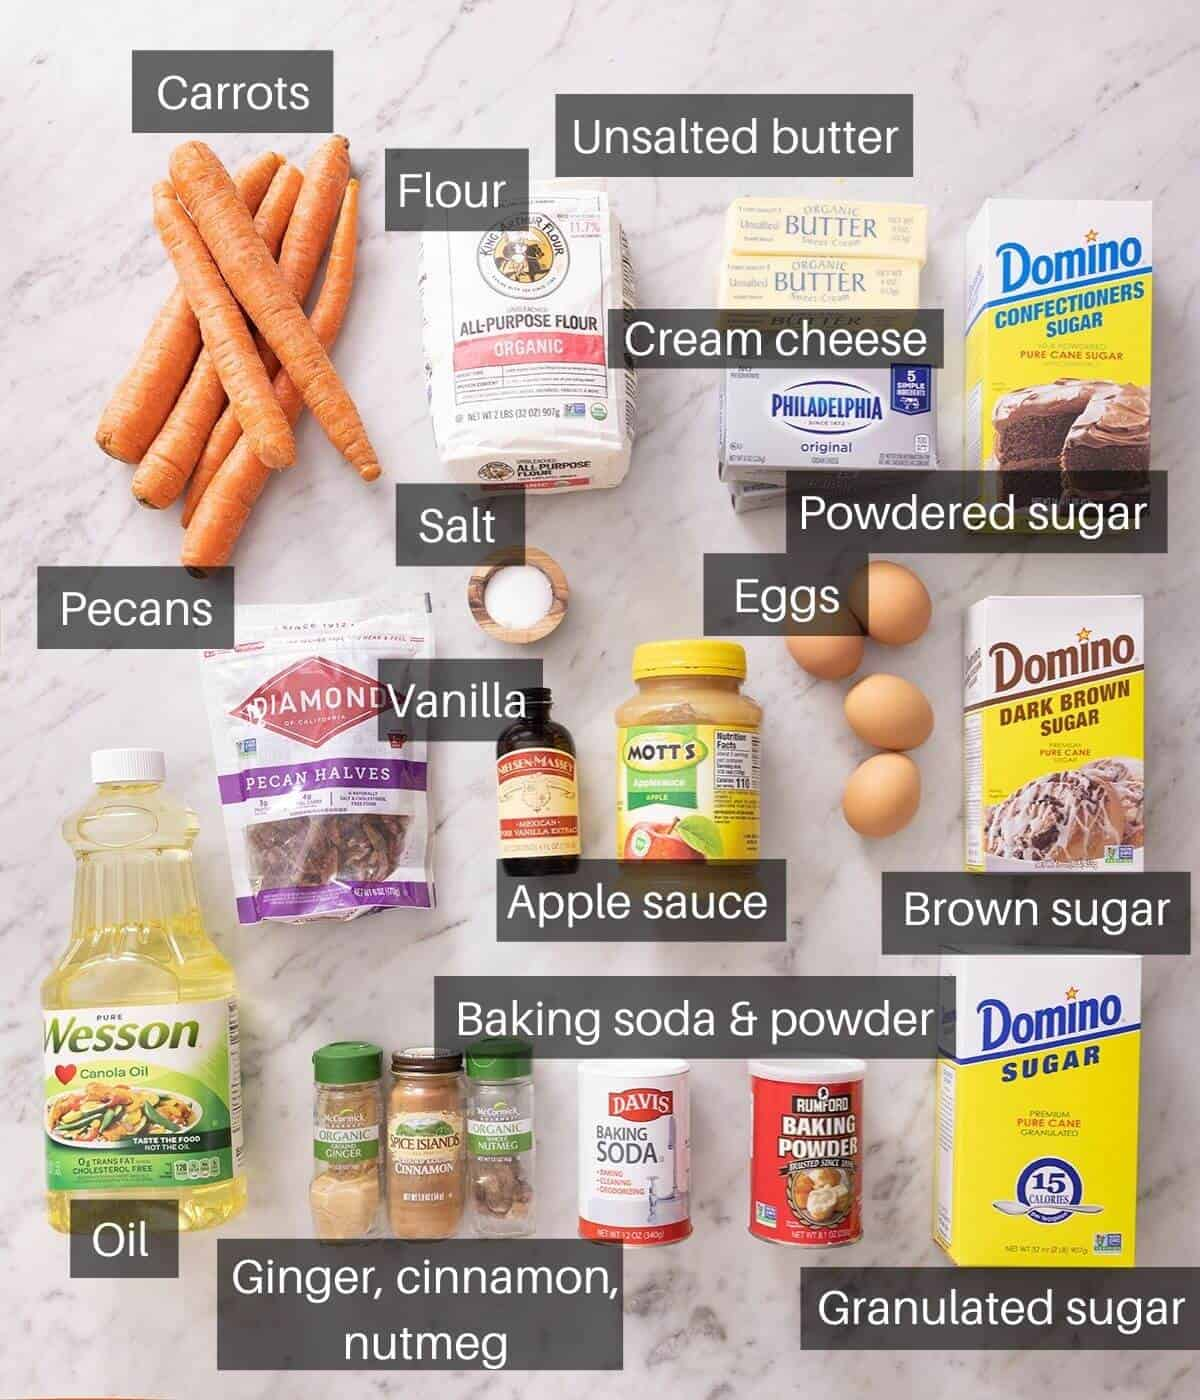 An overhead shot of all the ingredients you need to make carrot cake